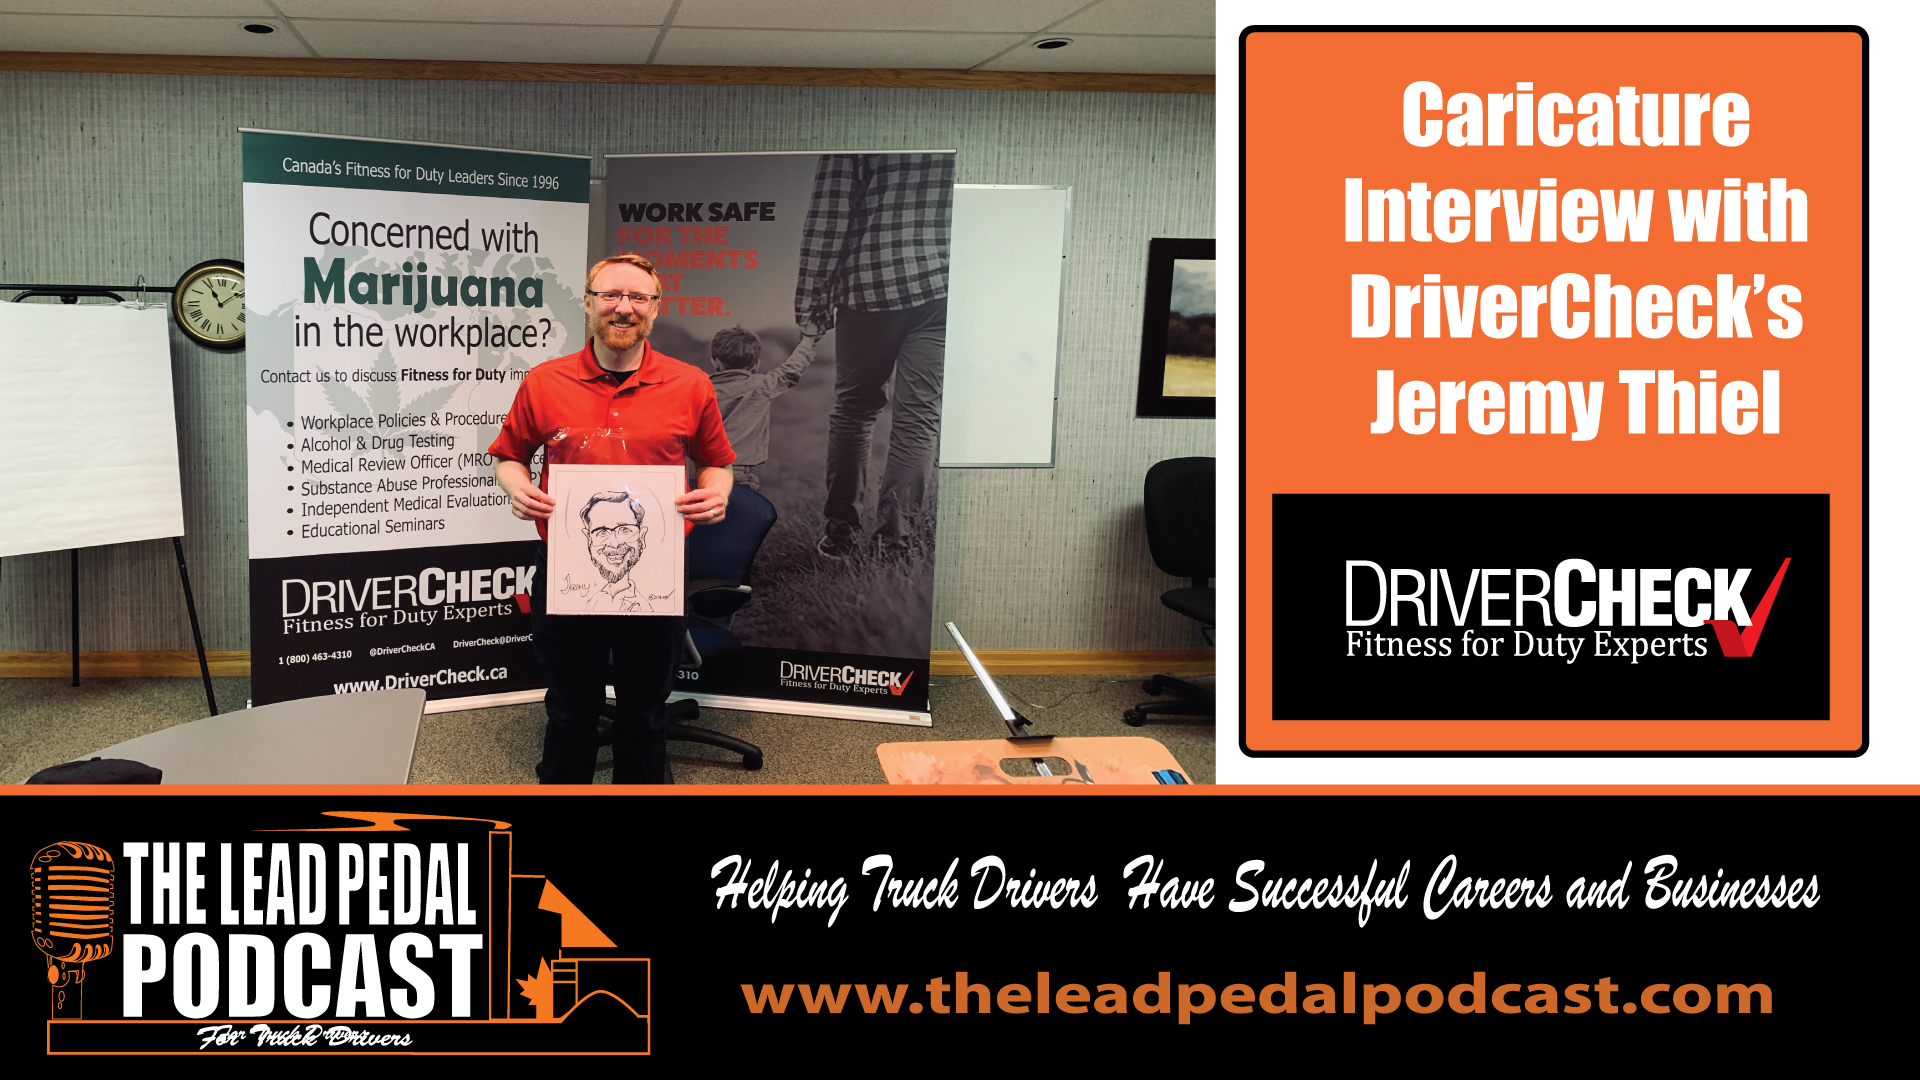 A Visit with DriverCheck's Jeremy Thiel